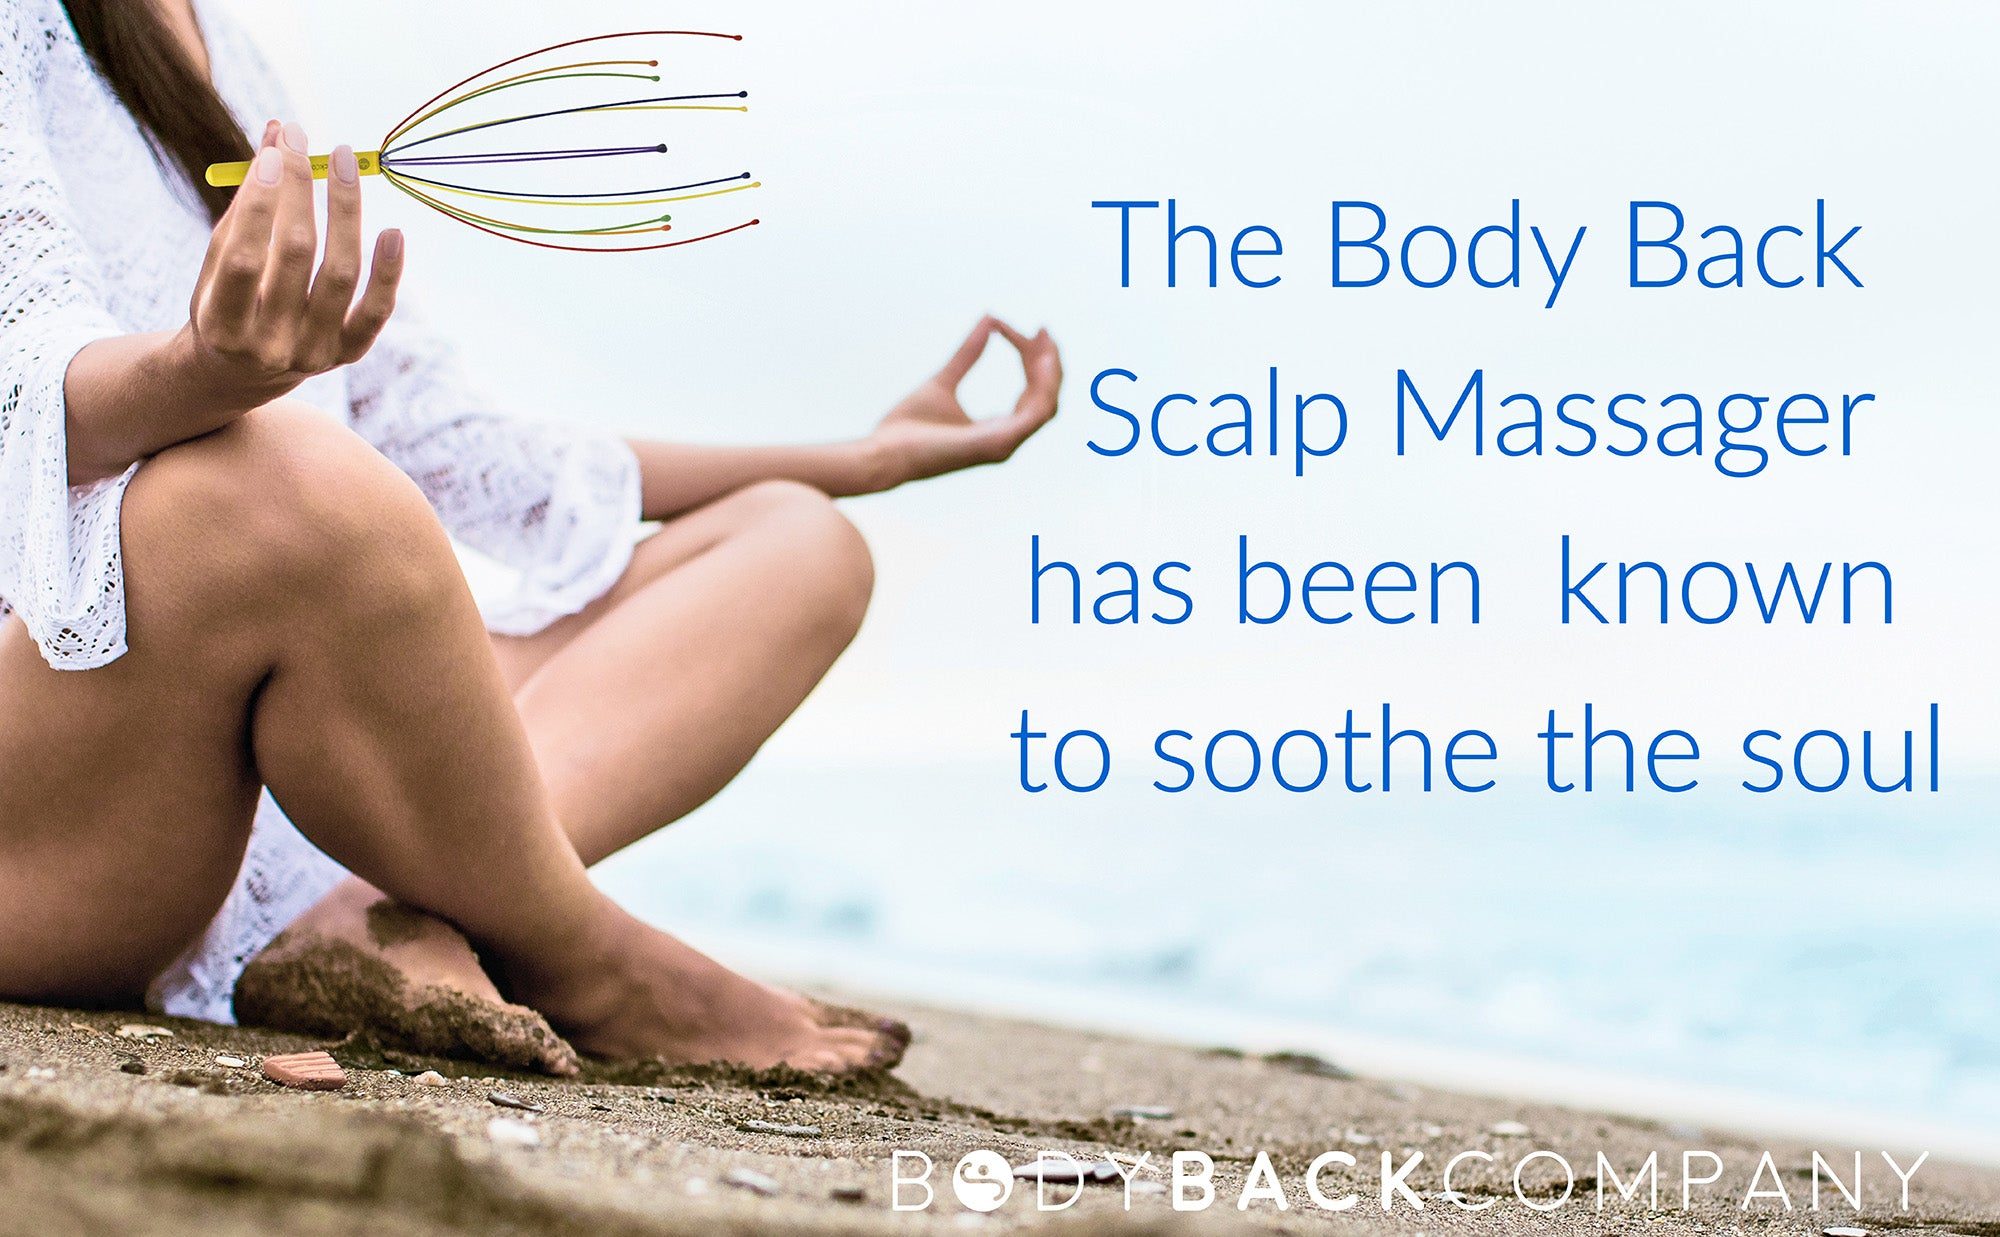 Scalp Massager has been known to Sooth the Soul